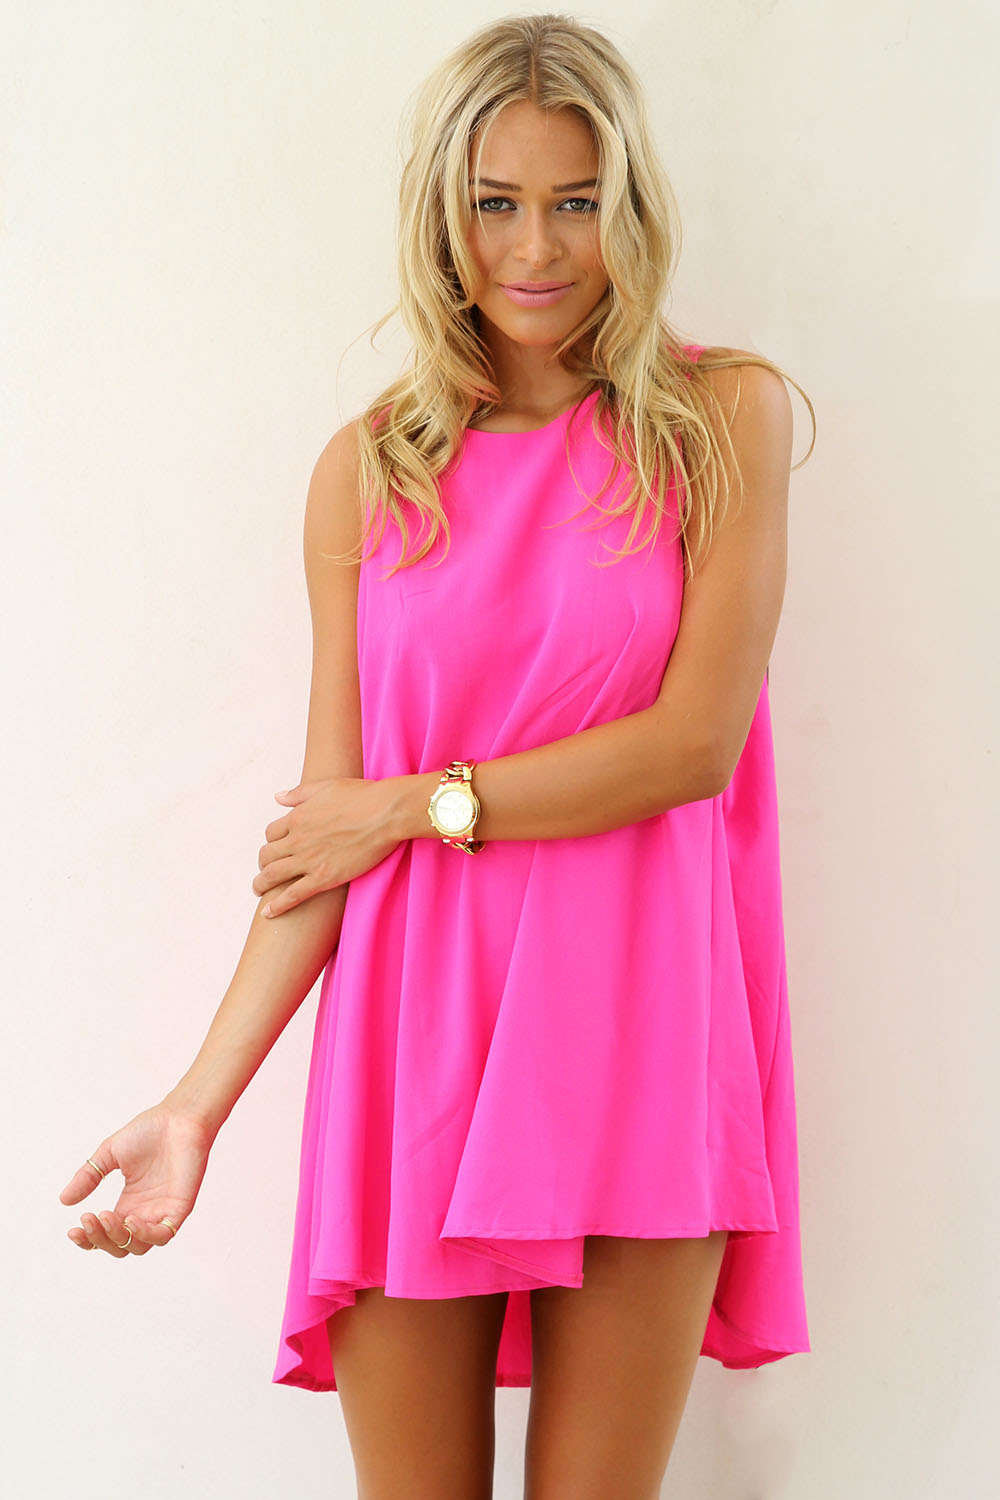 Pink Mini Dress - Pink Sleeveless A-Line Dress with | UsTrendy